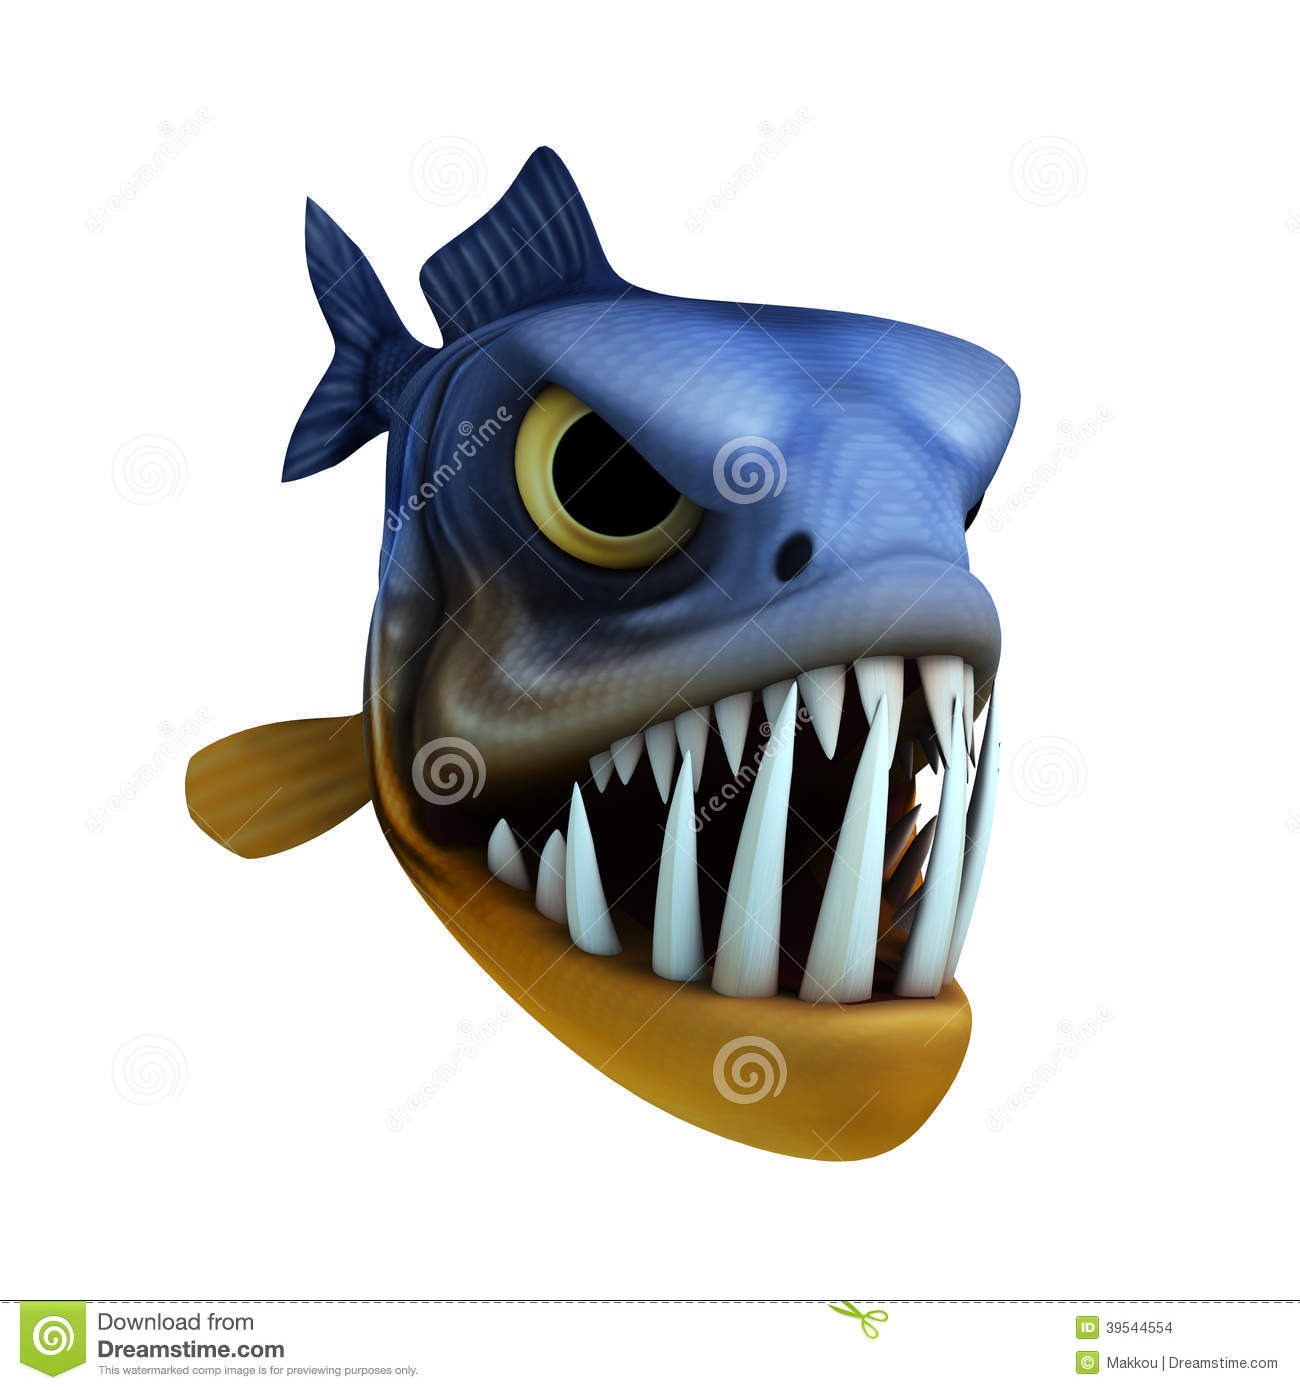 Cartoon Of Piranha Stock Illustration - Image: 39544554